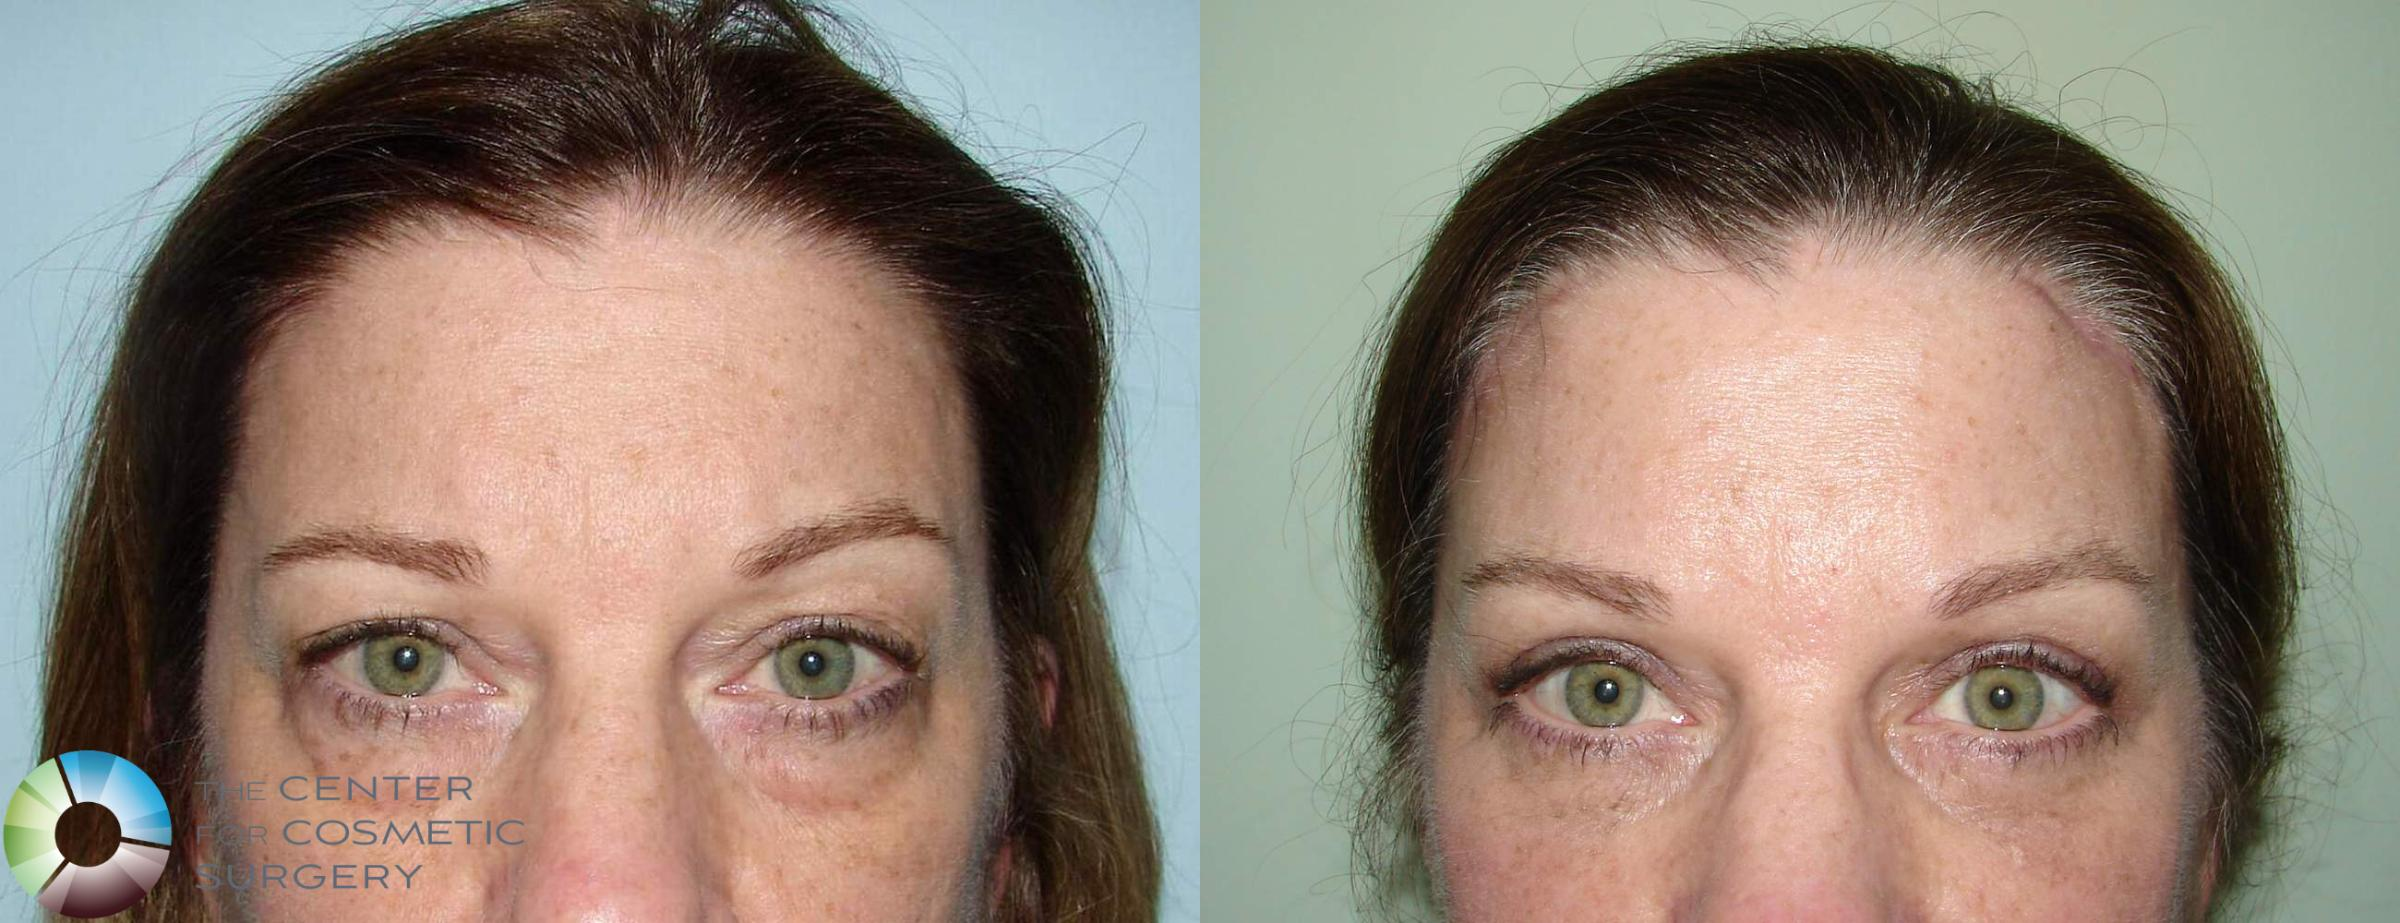 Mini Brow Lift In Denver The Center For Cosmetic Surgery